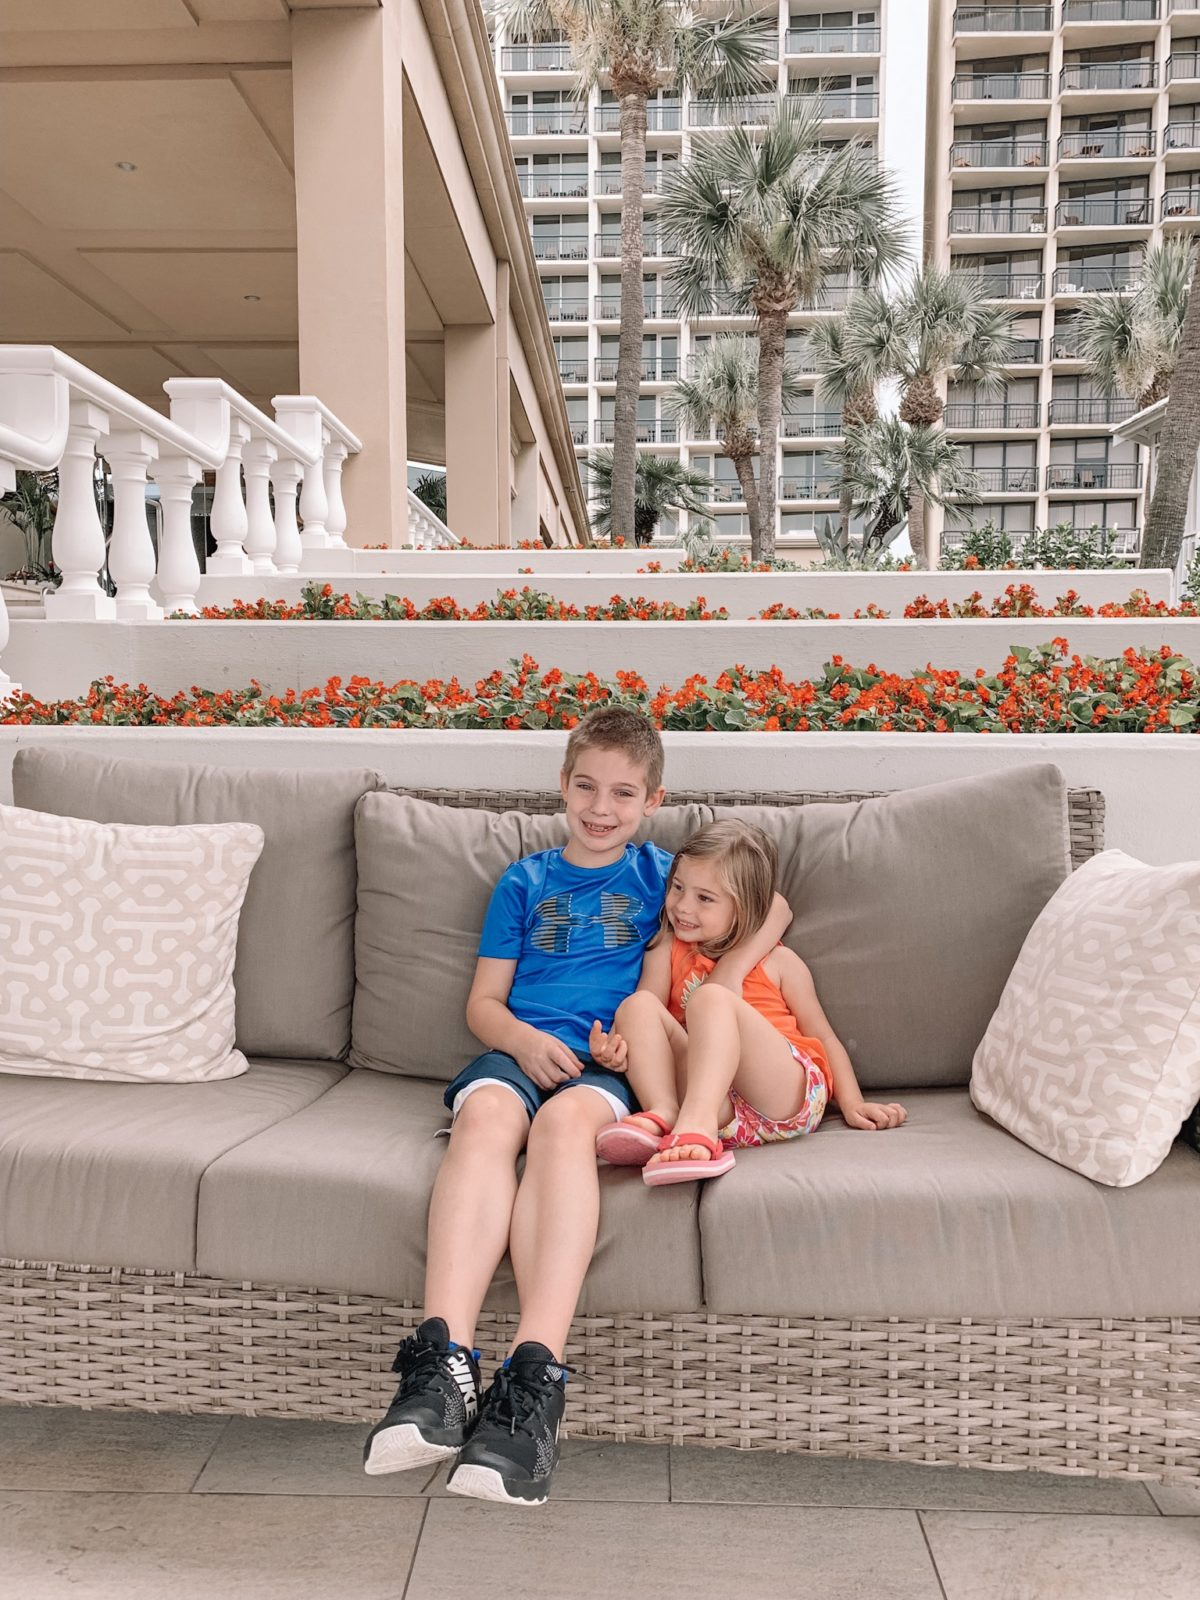 48 Hours in Galveston - Kids at the Hotel